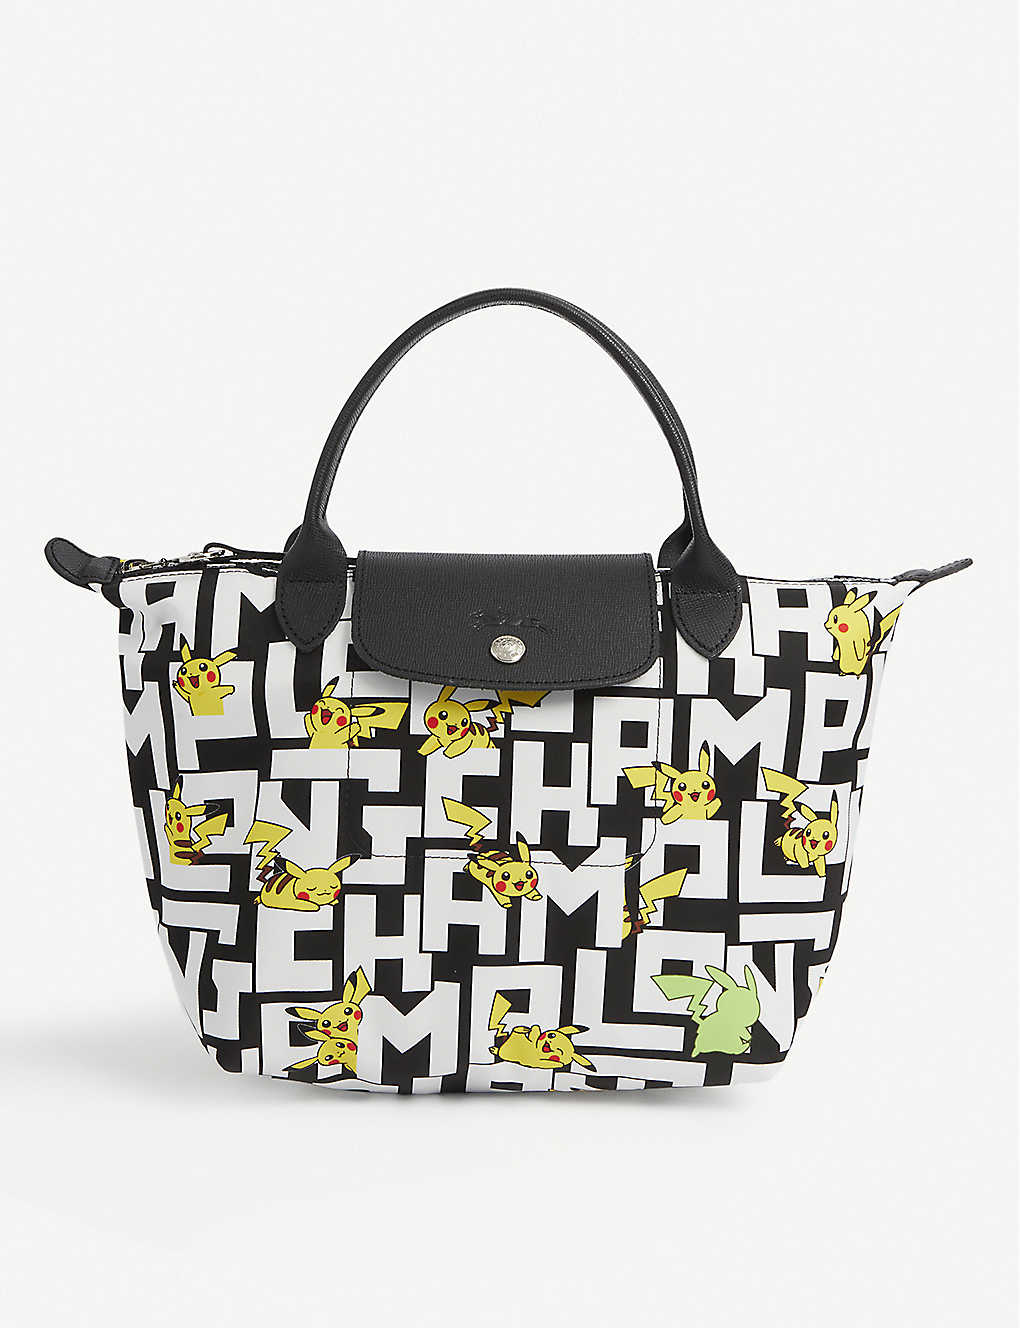 LONGCHAMP: Longchamp x Pokémon Le Pliage Pikachu-print nylon top-handle bag